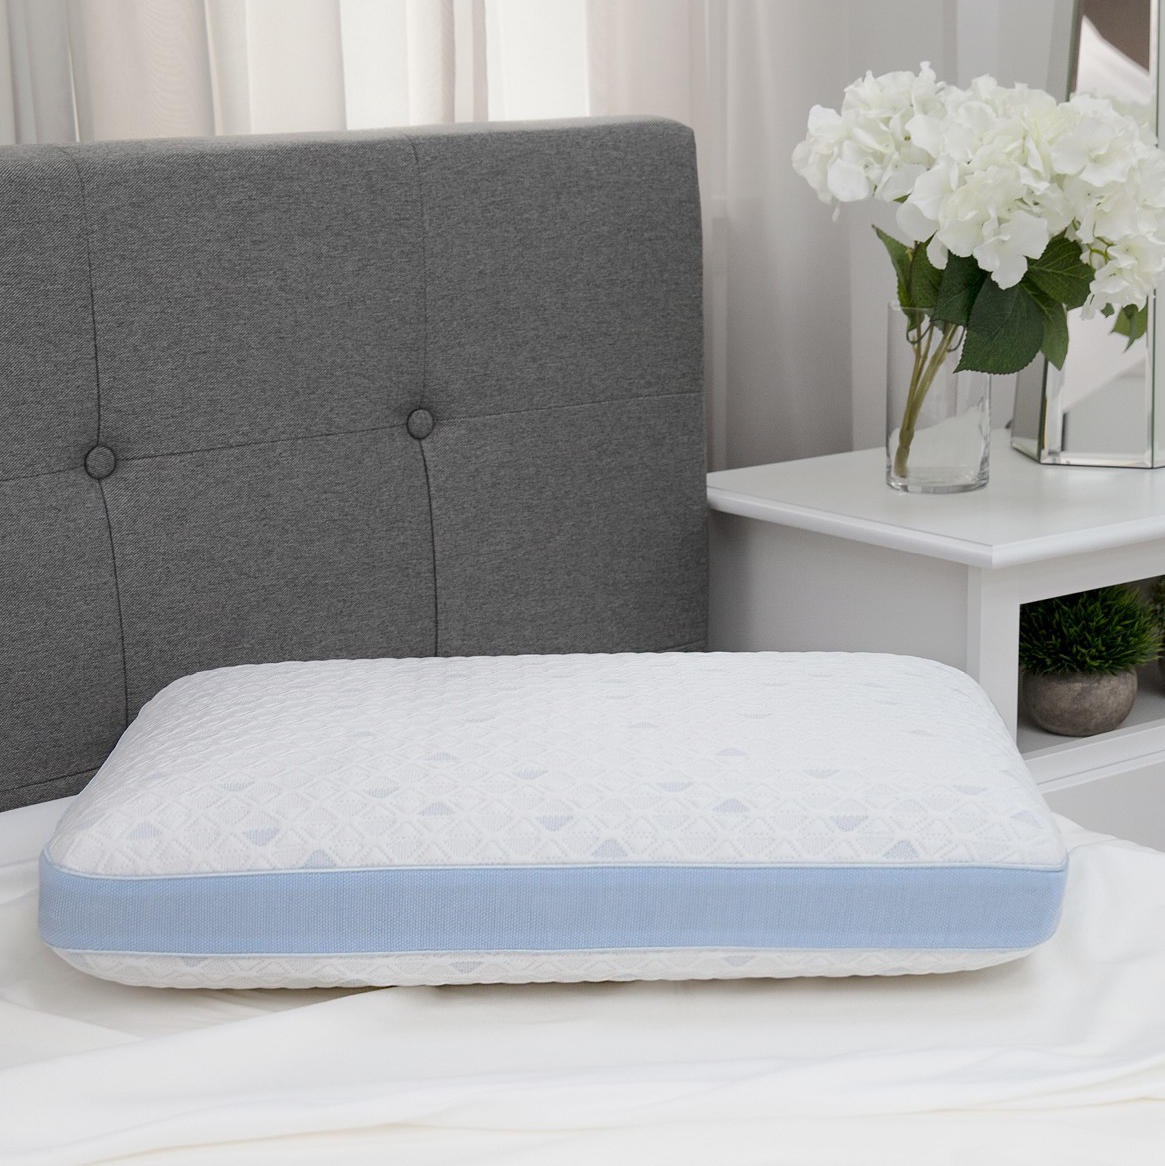 SensorGel Cold Touch Gusseted Gel-Infused Memory Foam Pillow